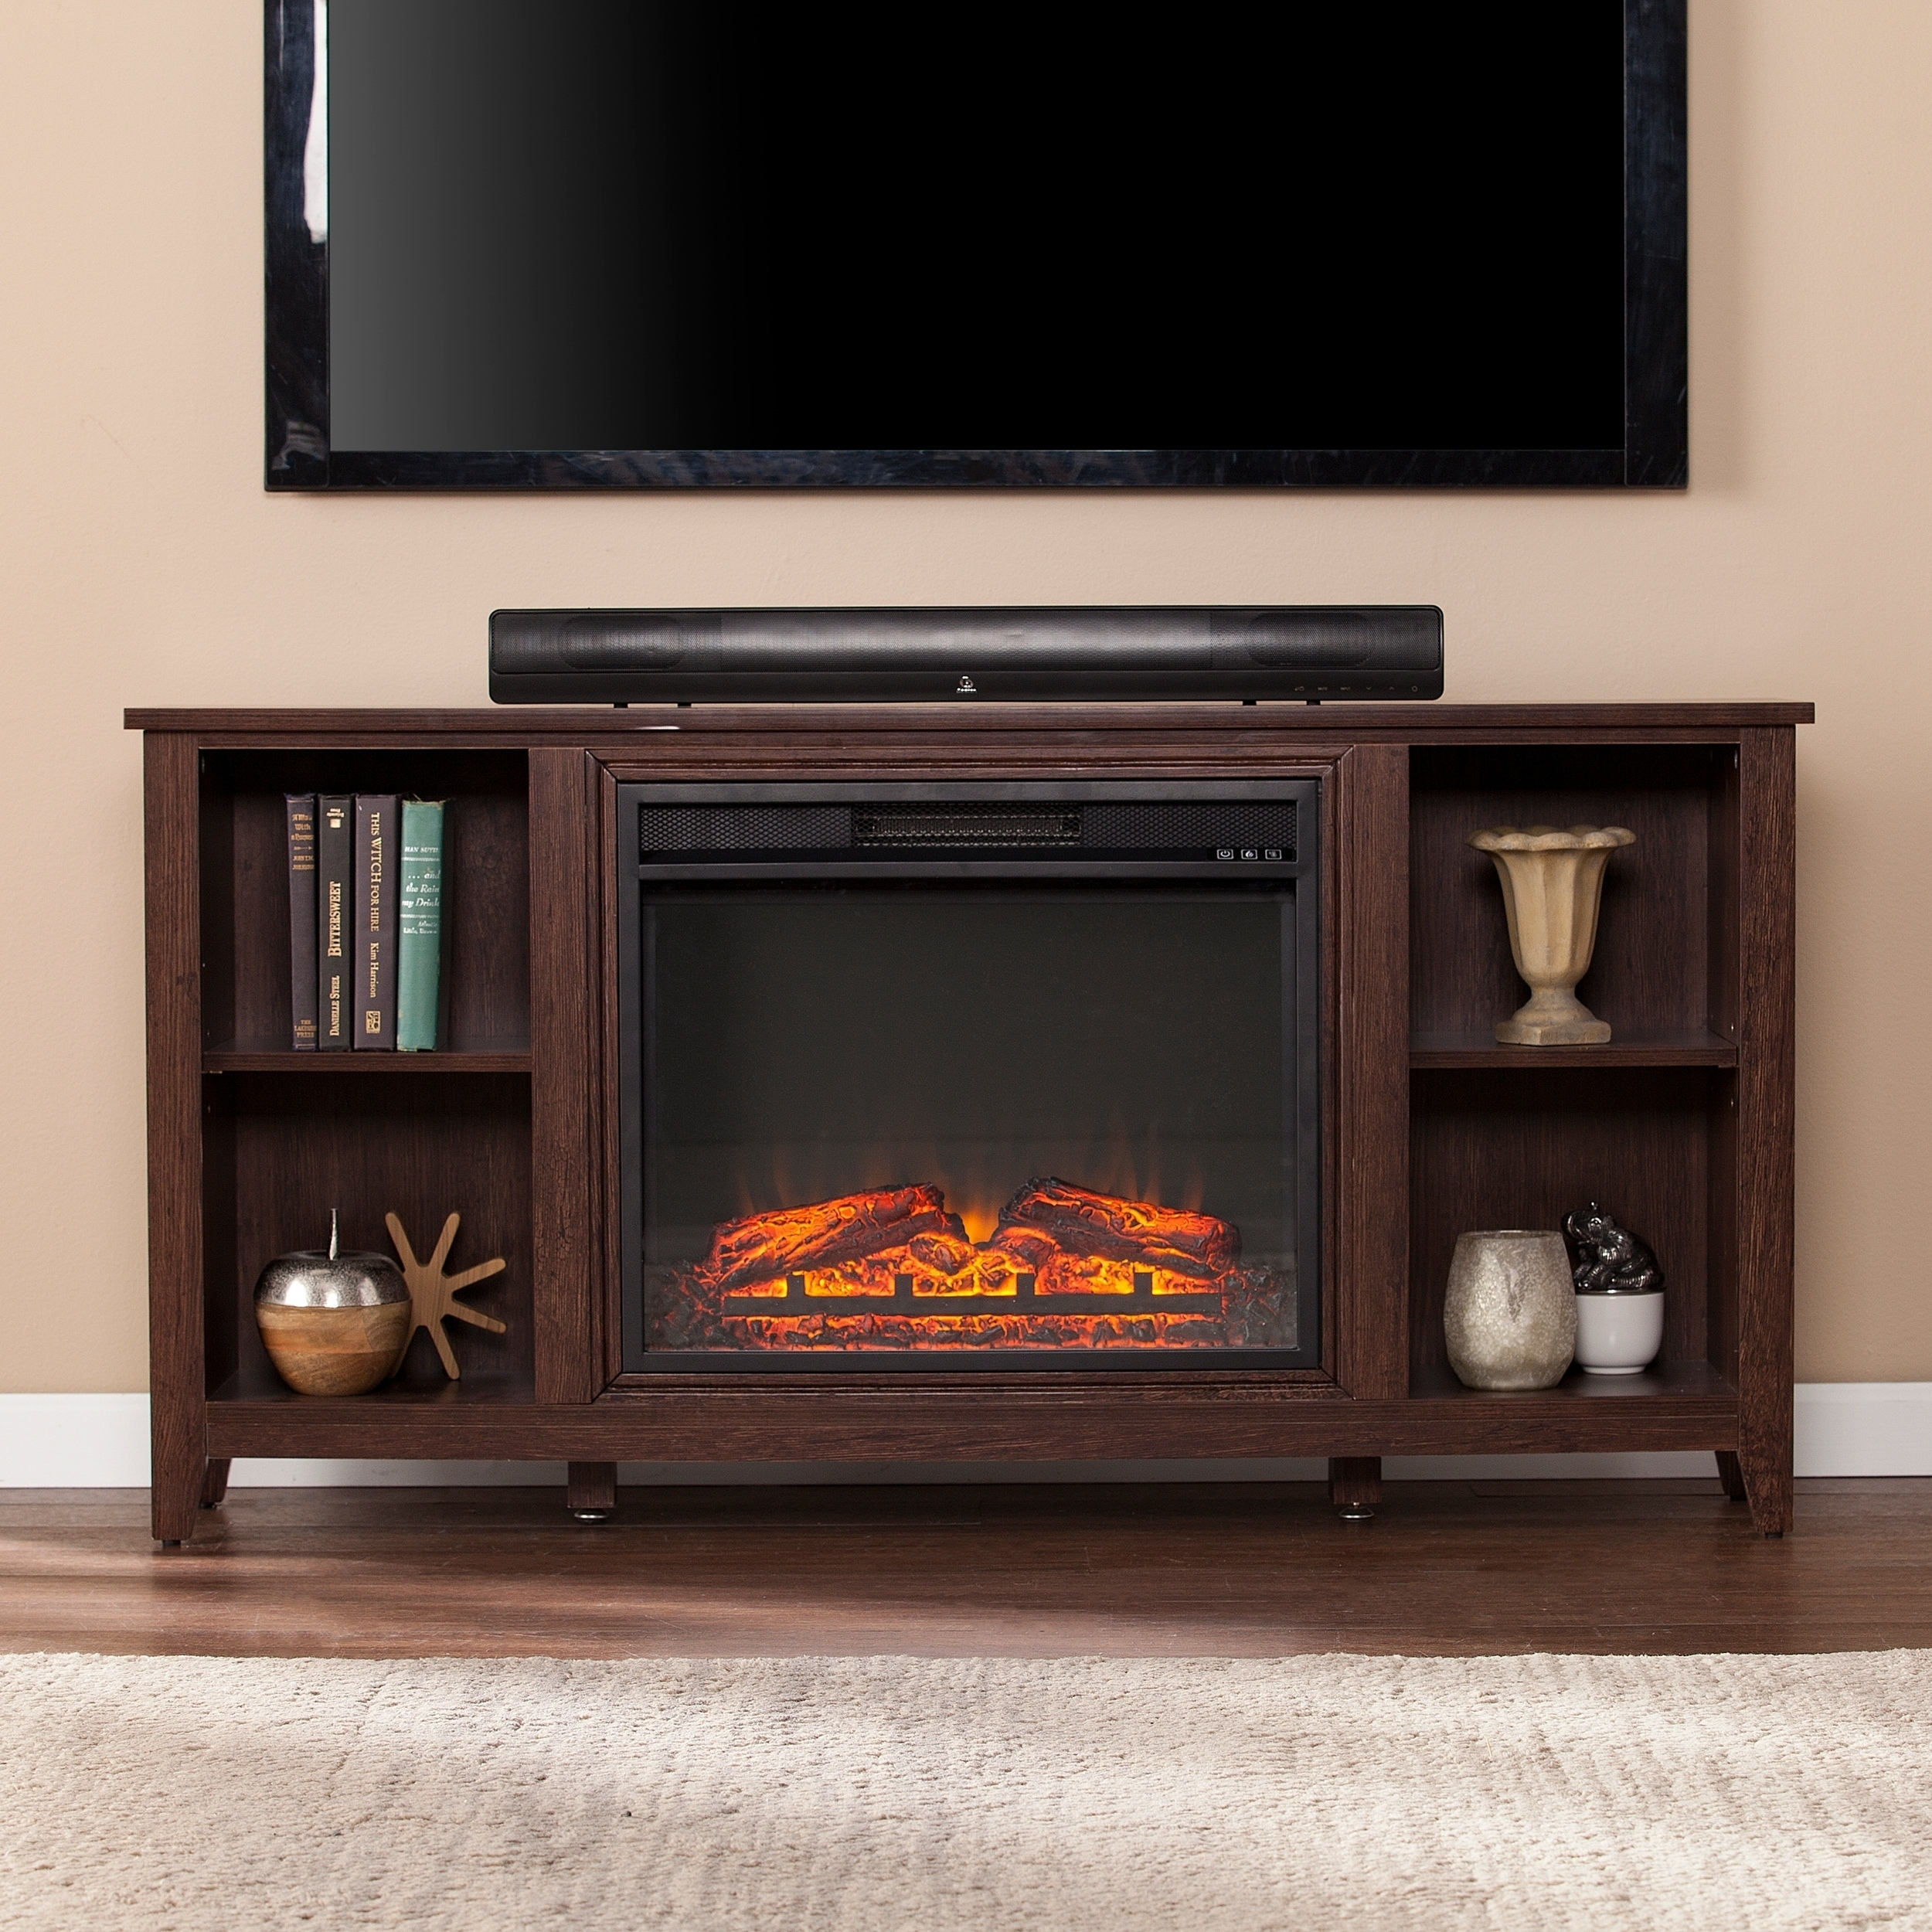 black console curved fireplace entertainment brighton suites electric in center novara media heater friday warm glass house coffee